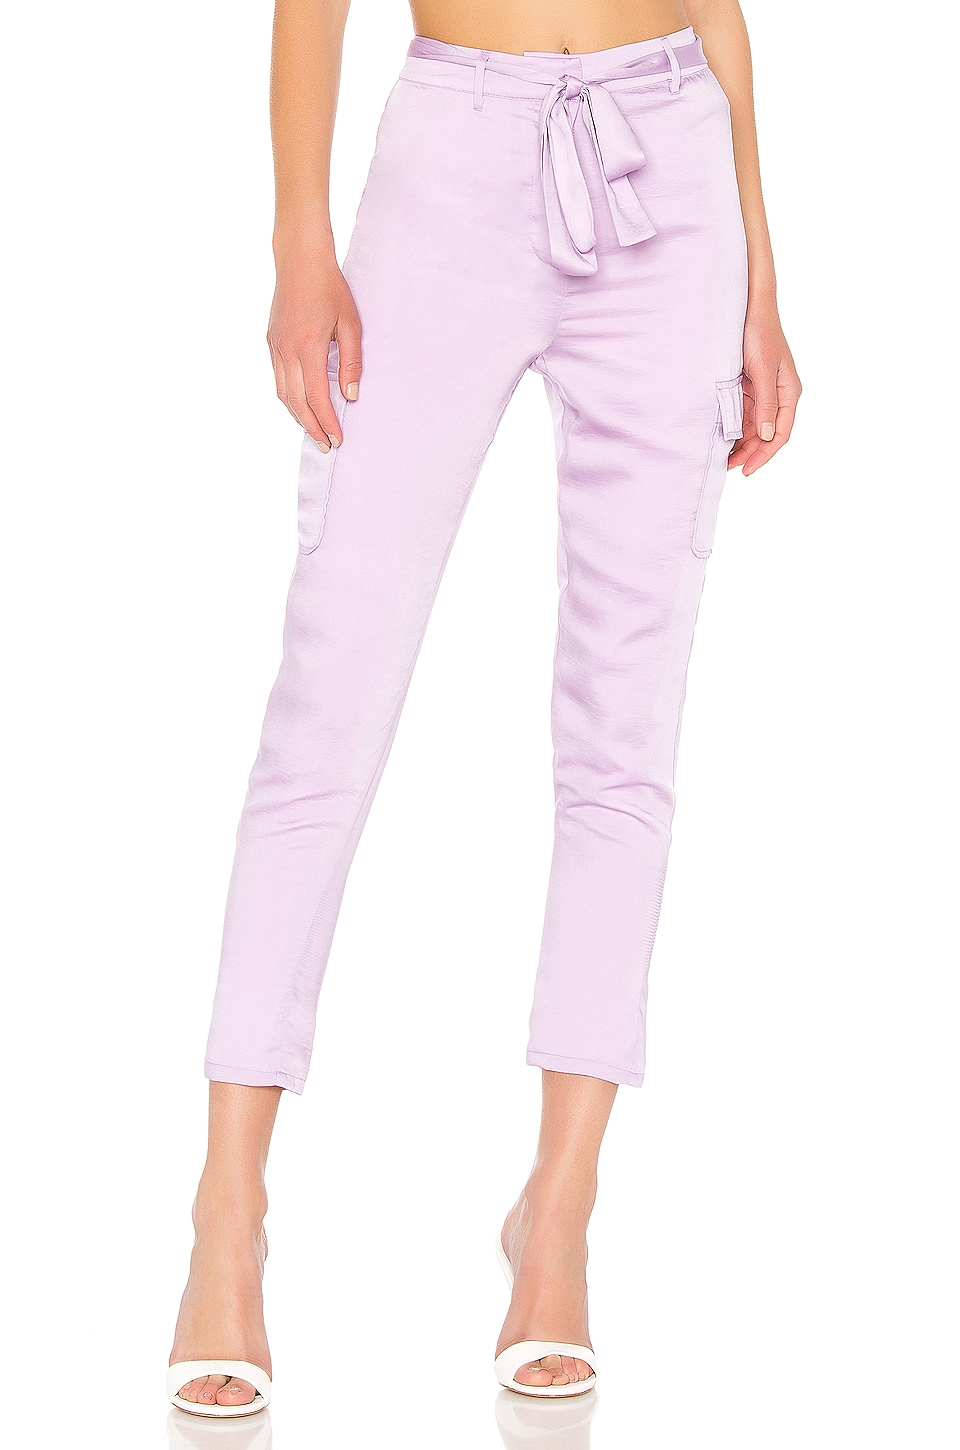 Lovers + Friends Clarissa Pants in Lilac